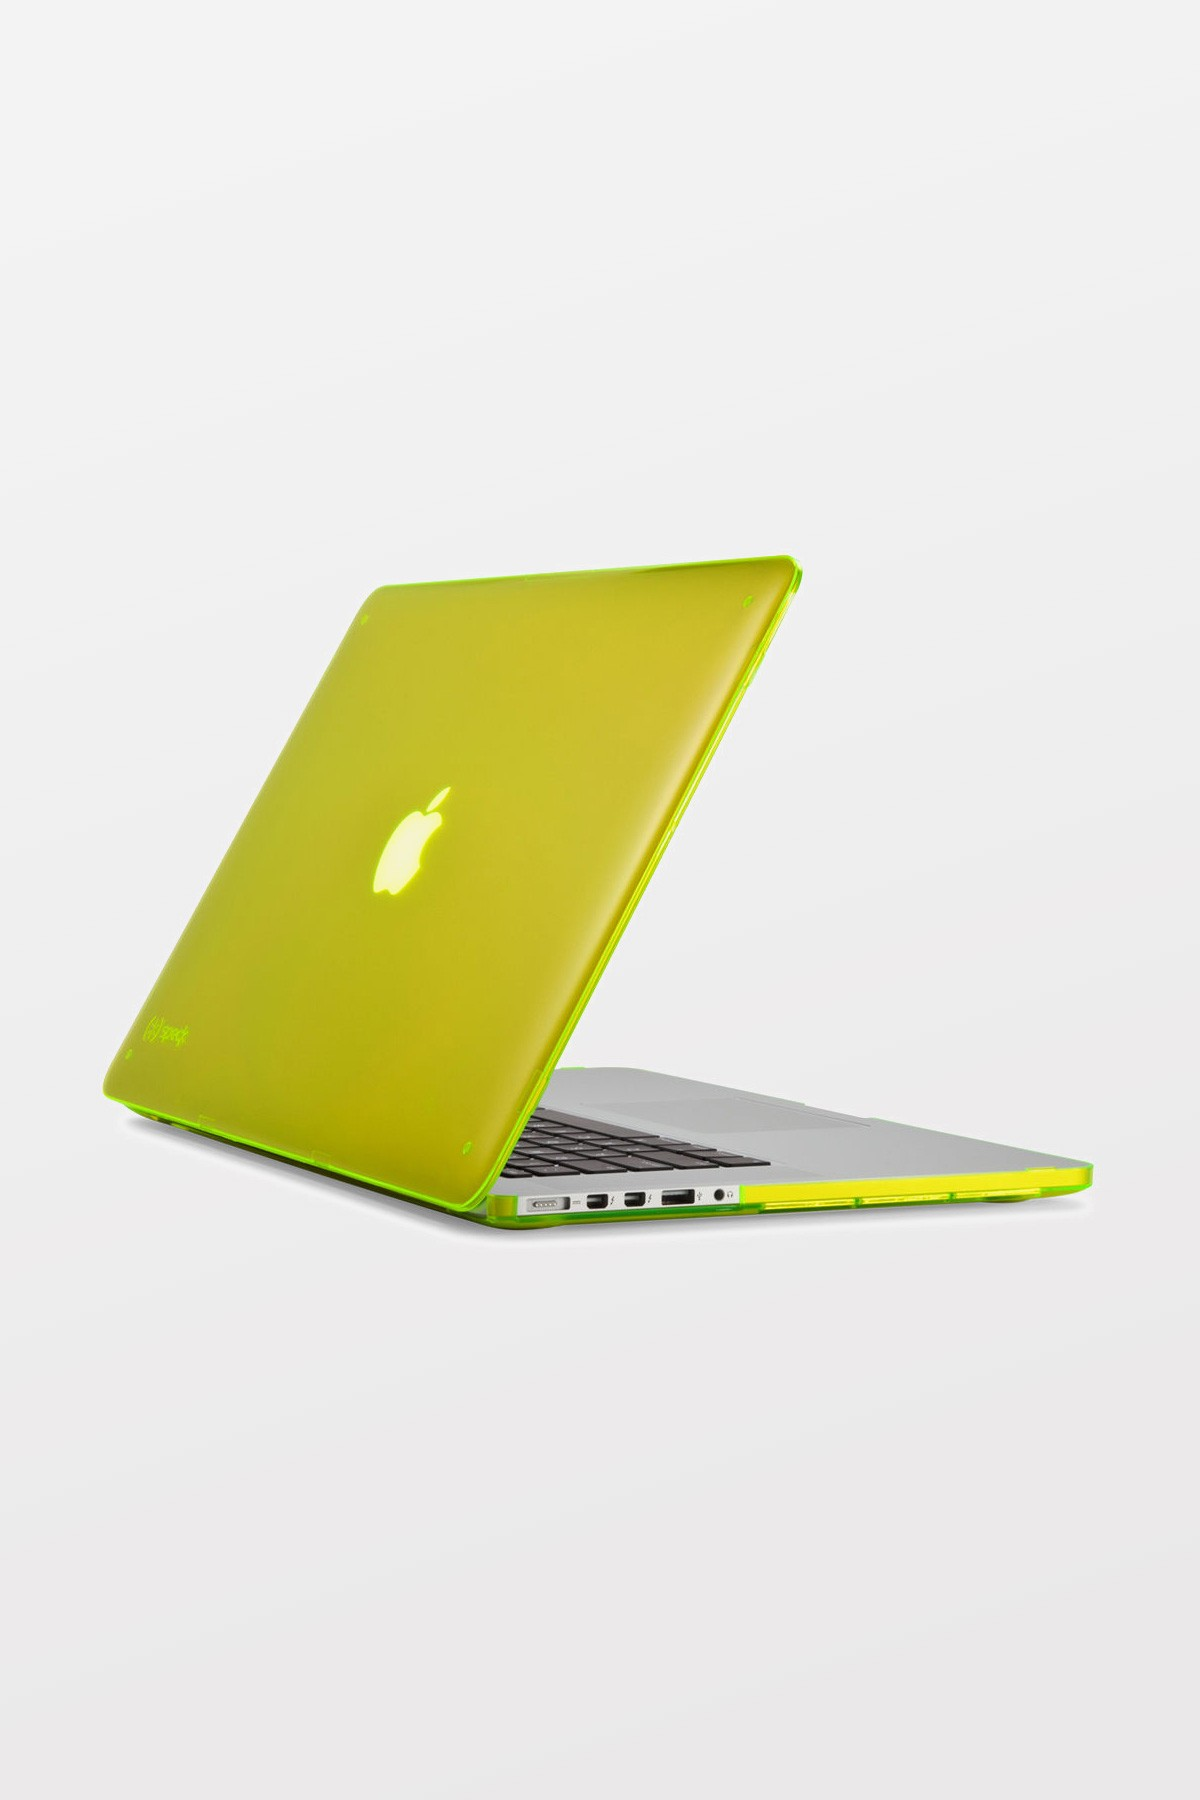 Speck Macbook Pro 15-inch SeeThru Lightning Yellow